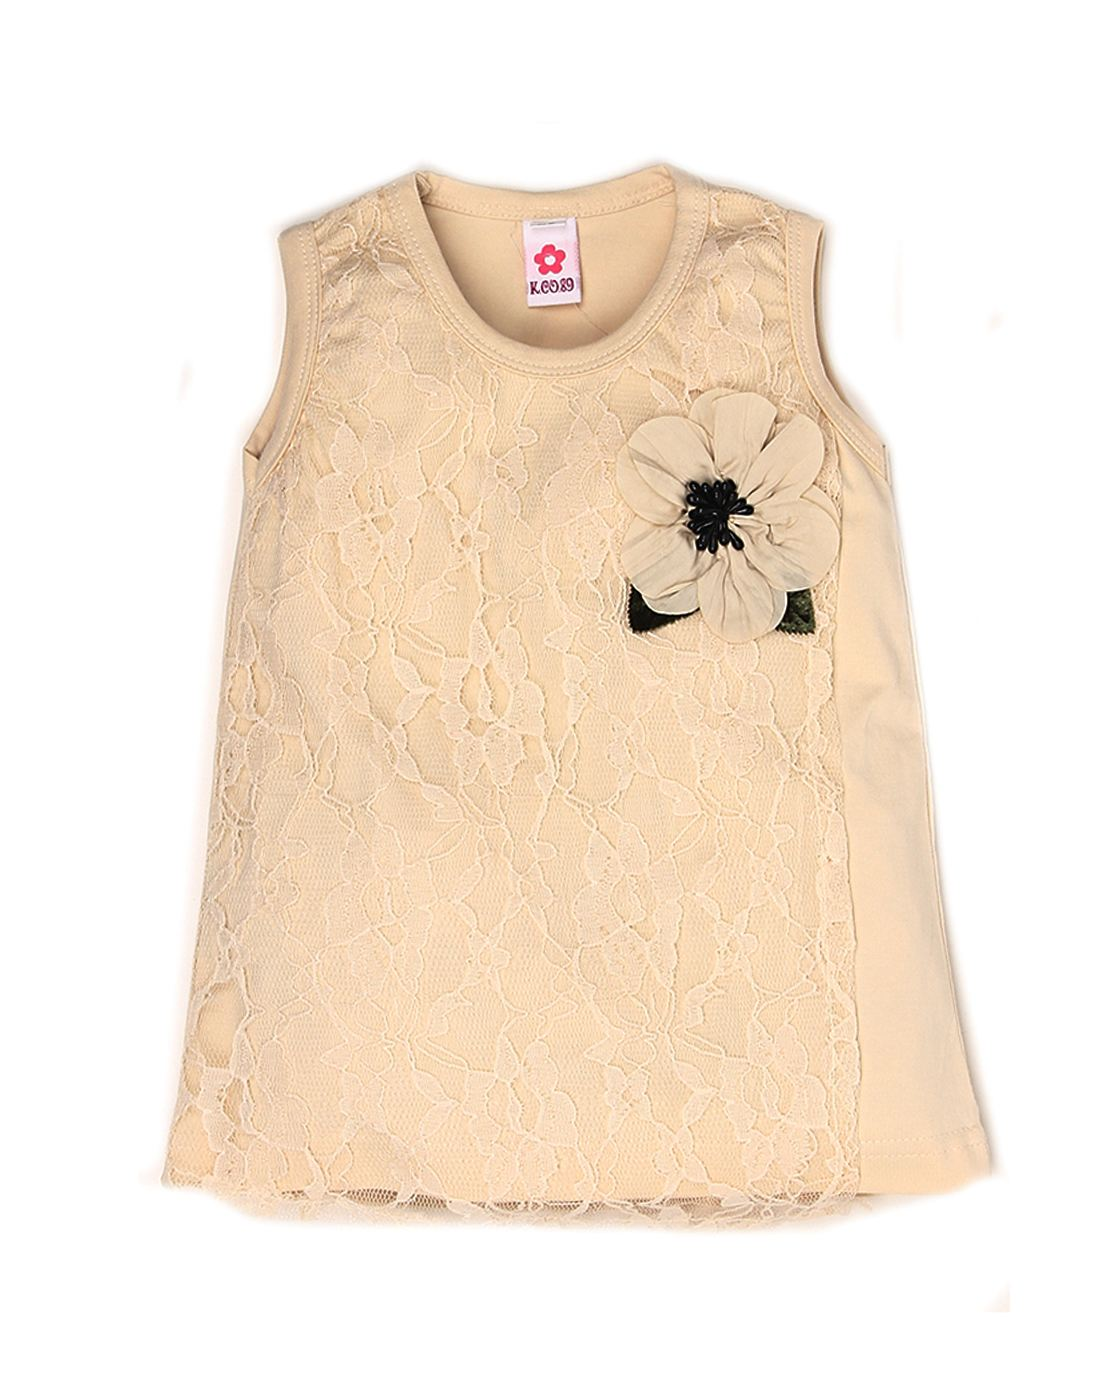 K.C.O 89 Girls Casual Solid Sleeveless Top